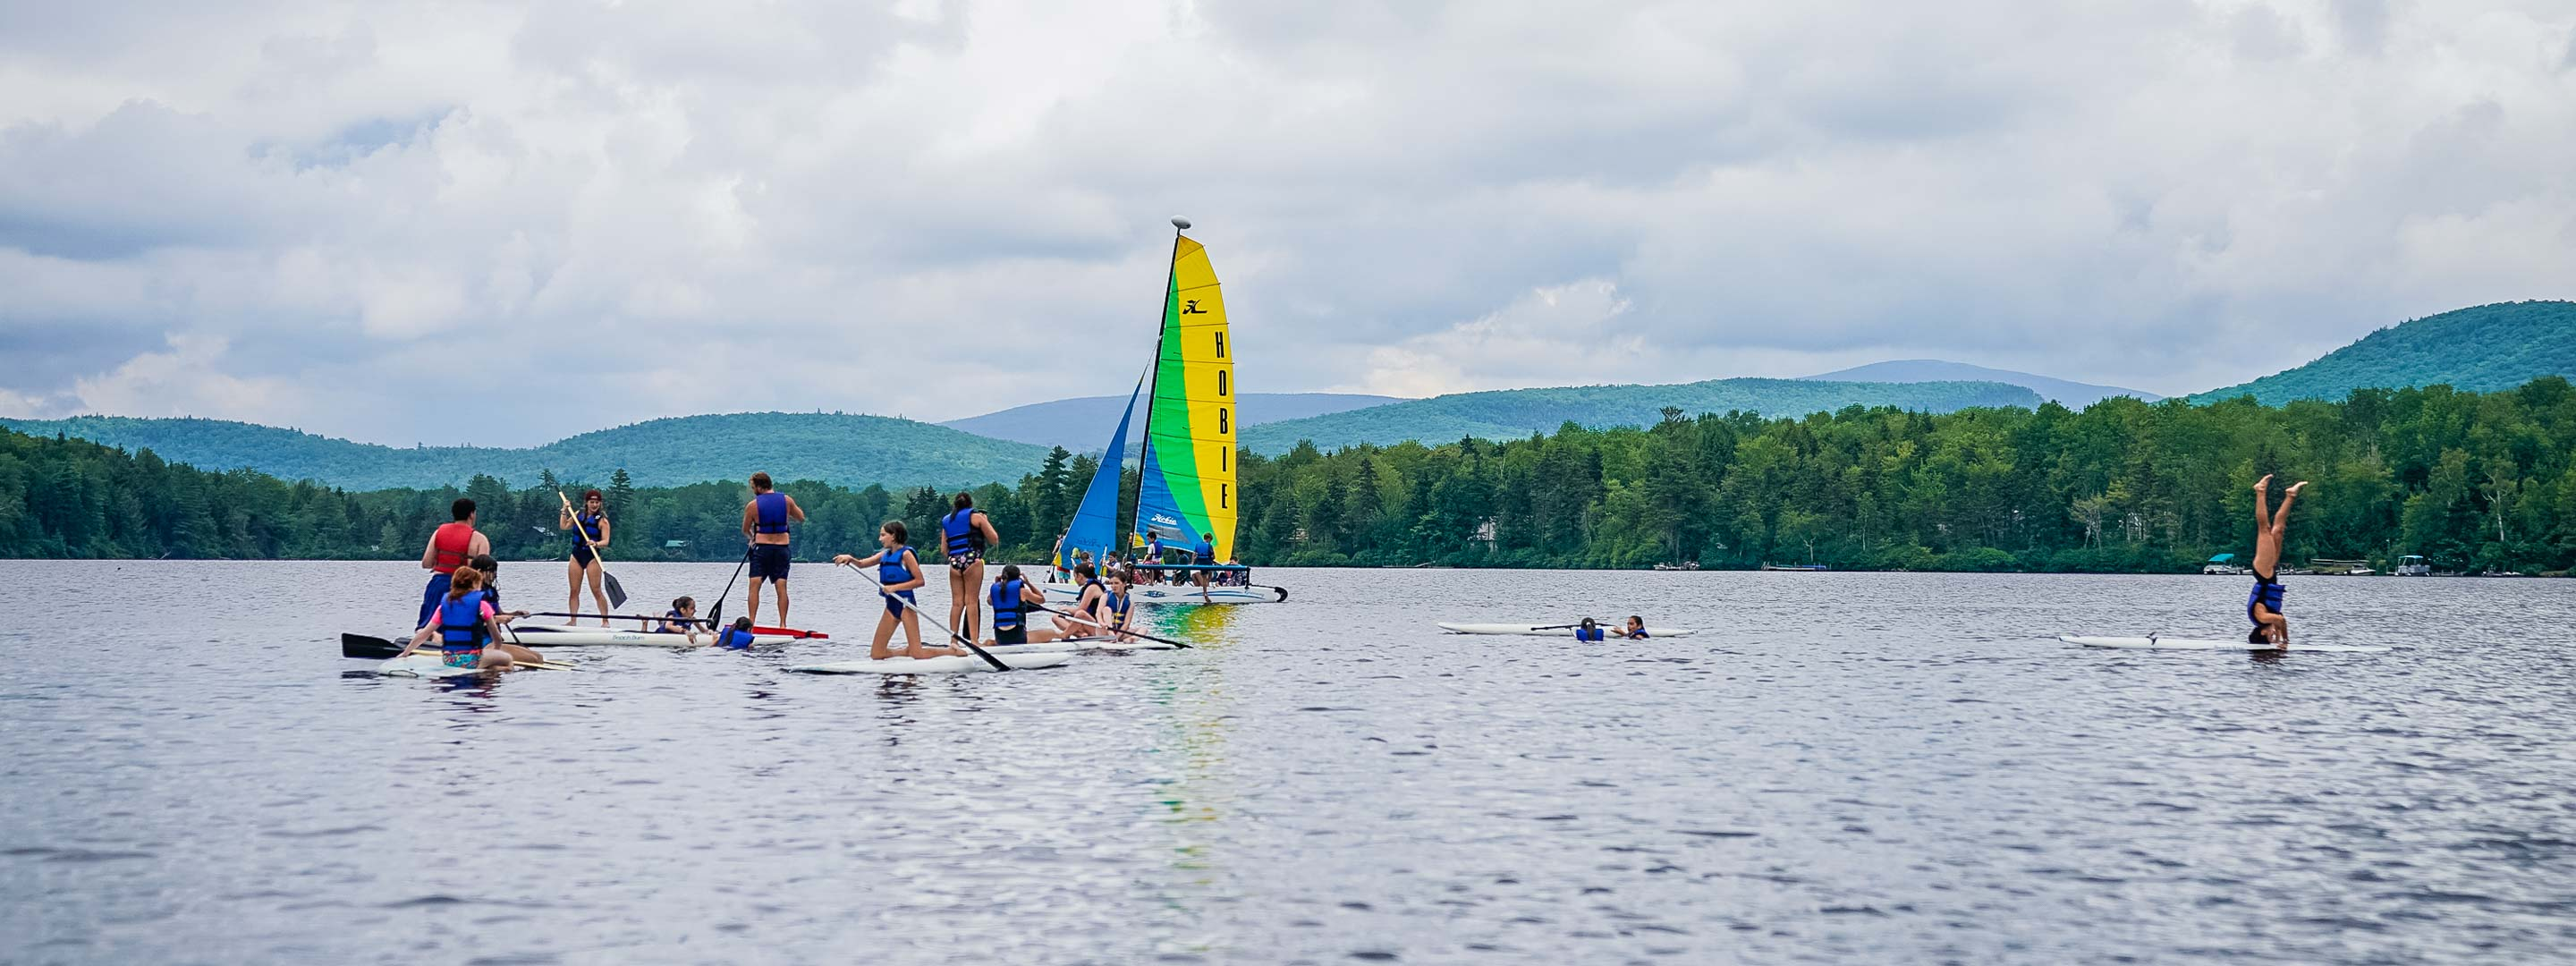 campers on sailboats and standing paddle boats on a lake